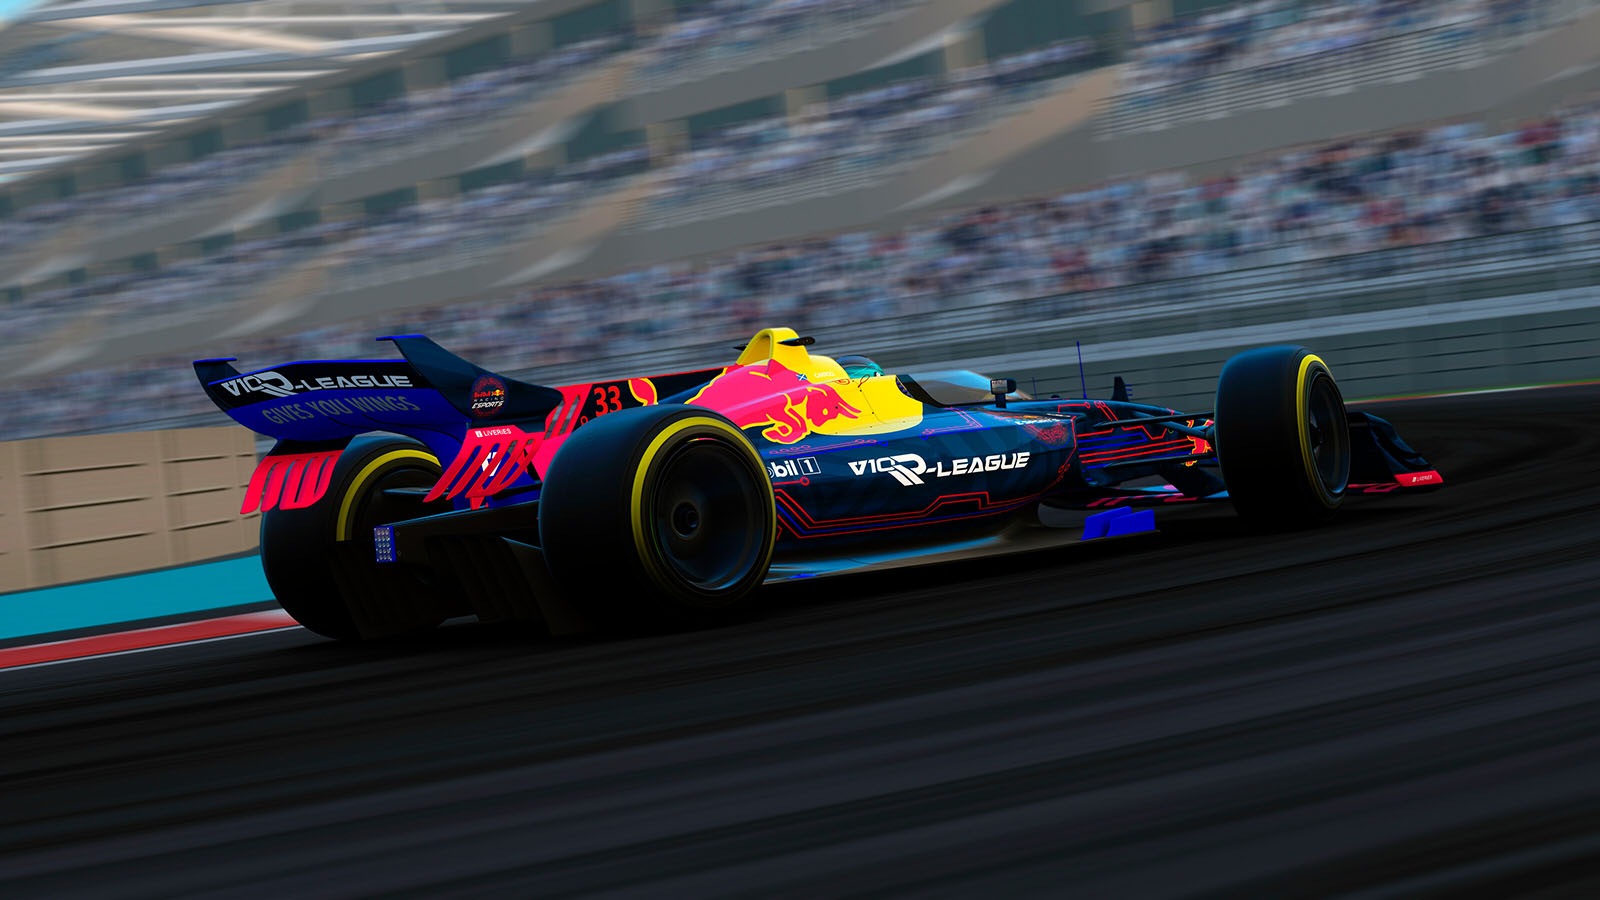 Red Bull Racing Esports V10 R-League